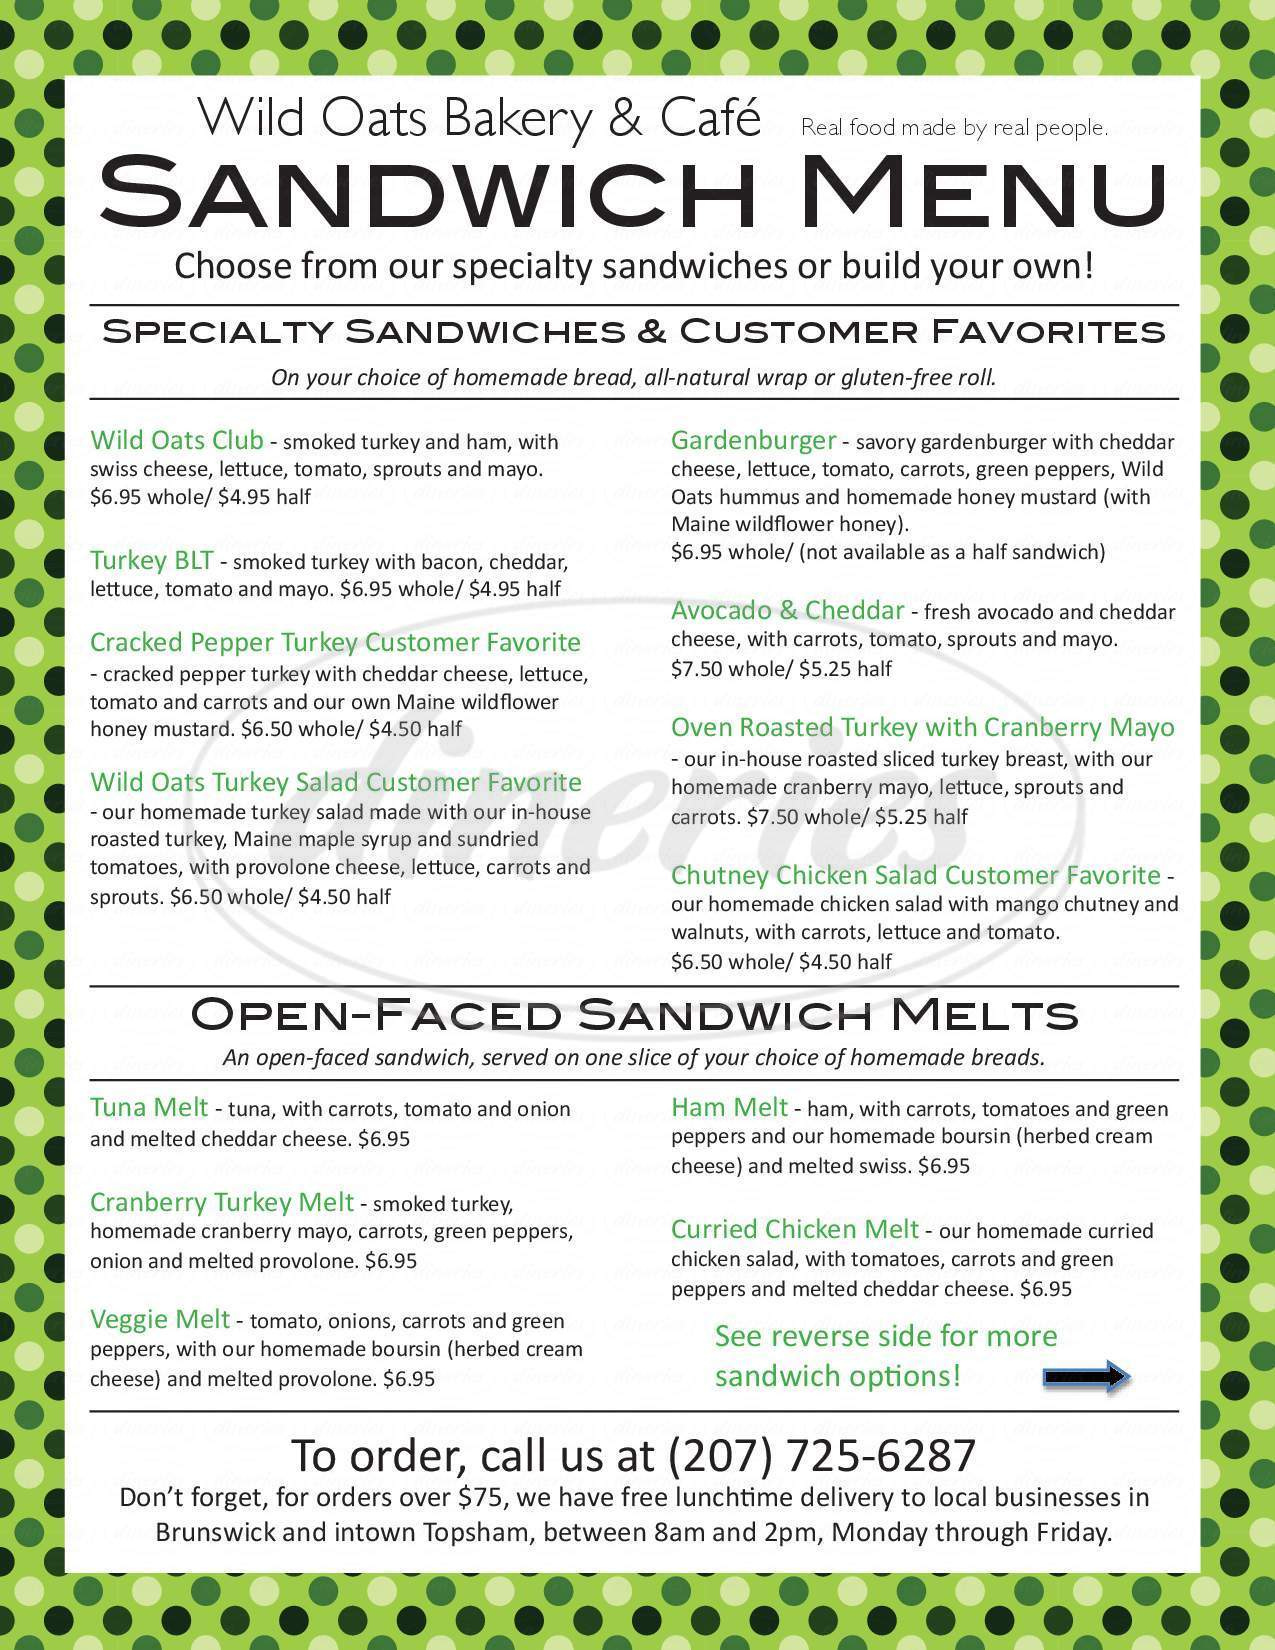 menu for Wild Oats Bakery & Cafe